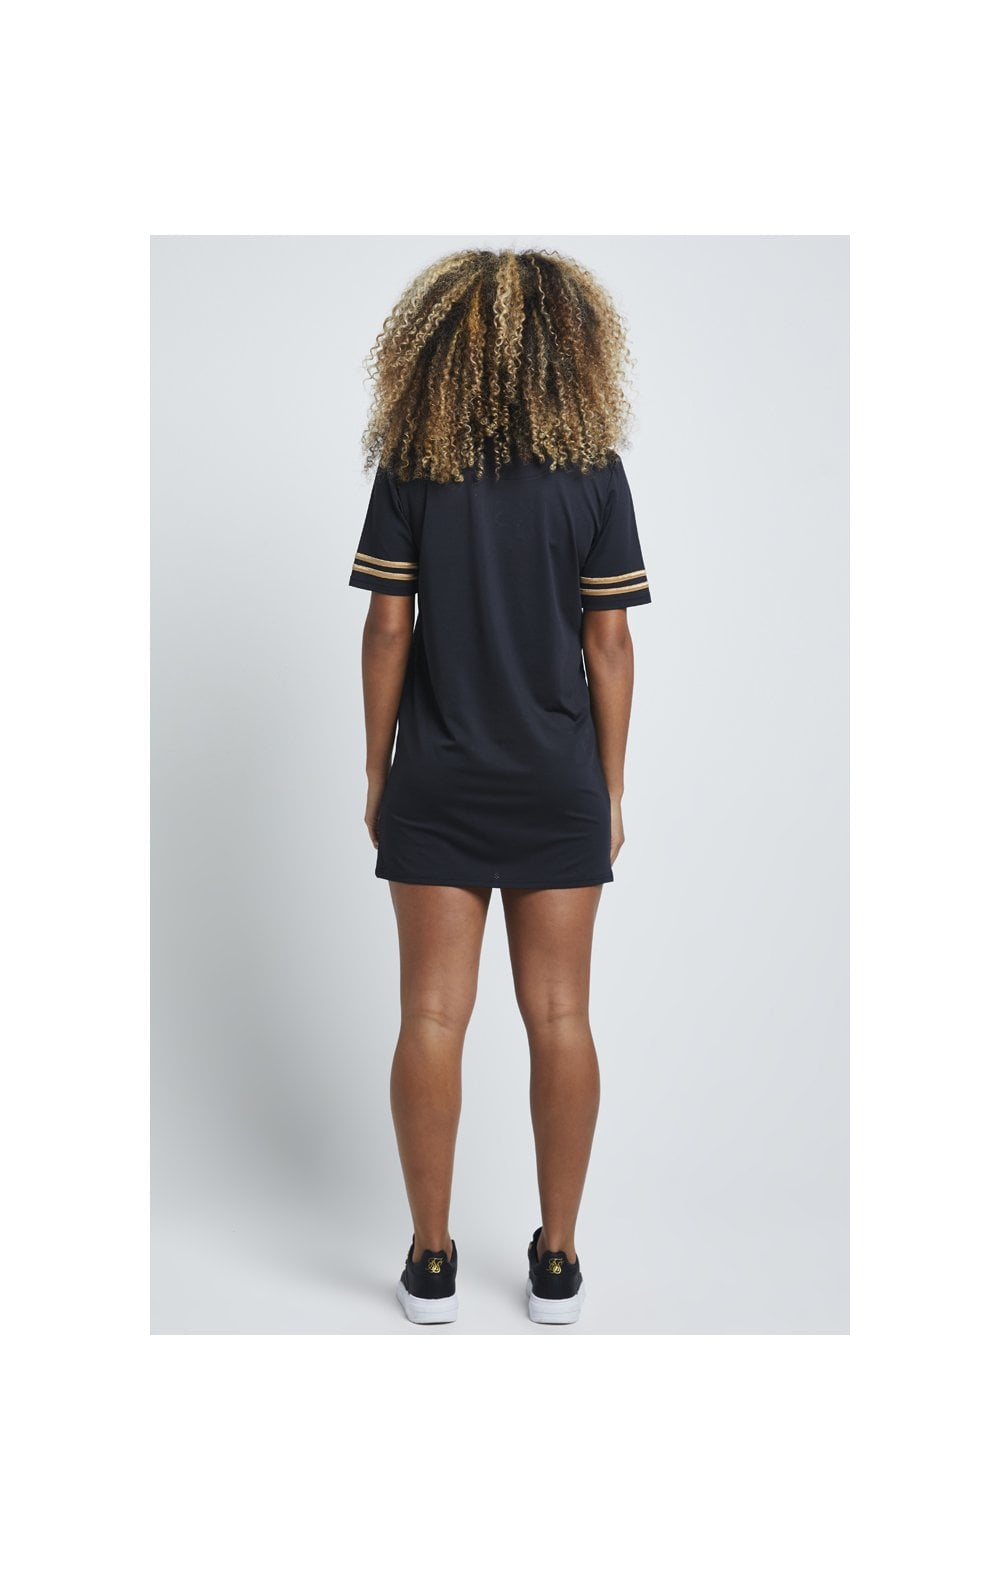 SikSilk Mesh T-Shirt Dress - Black (5)